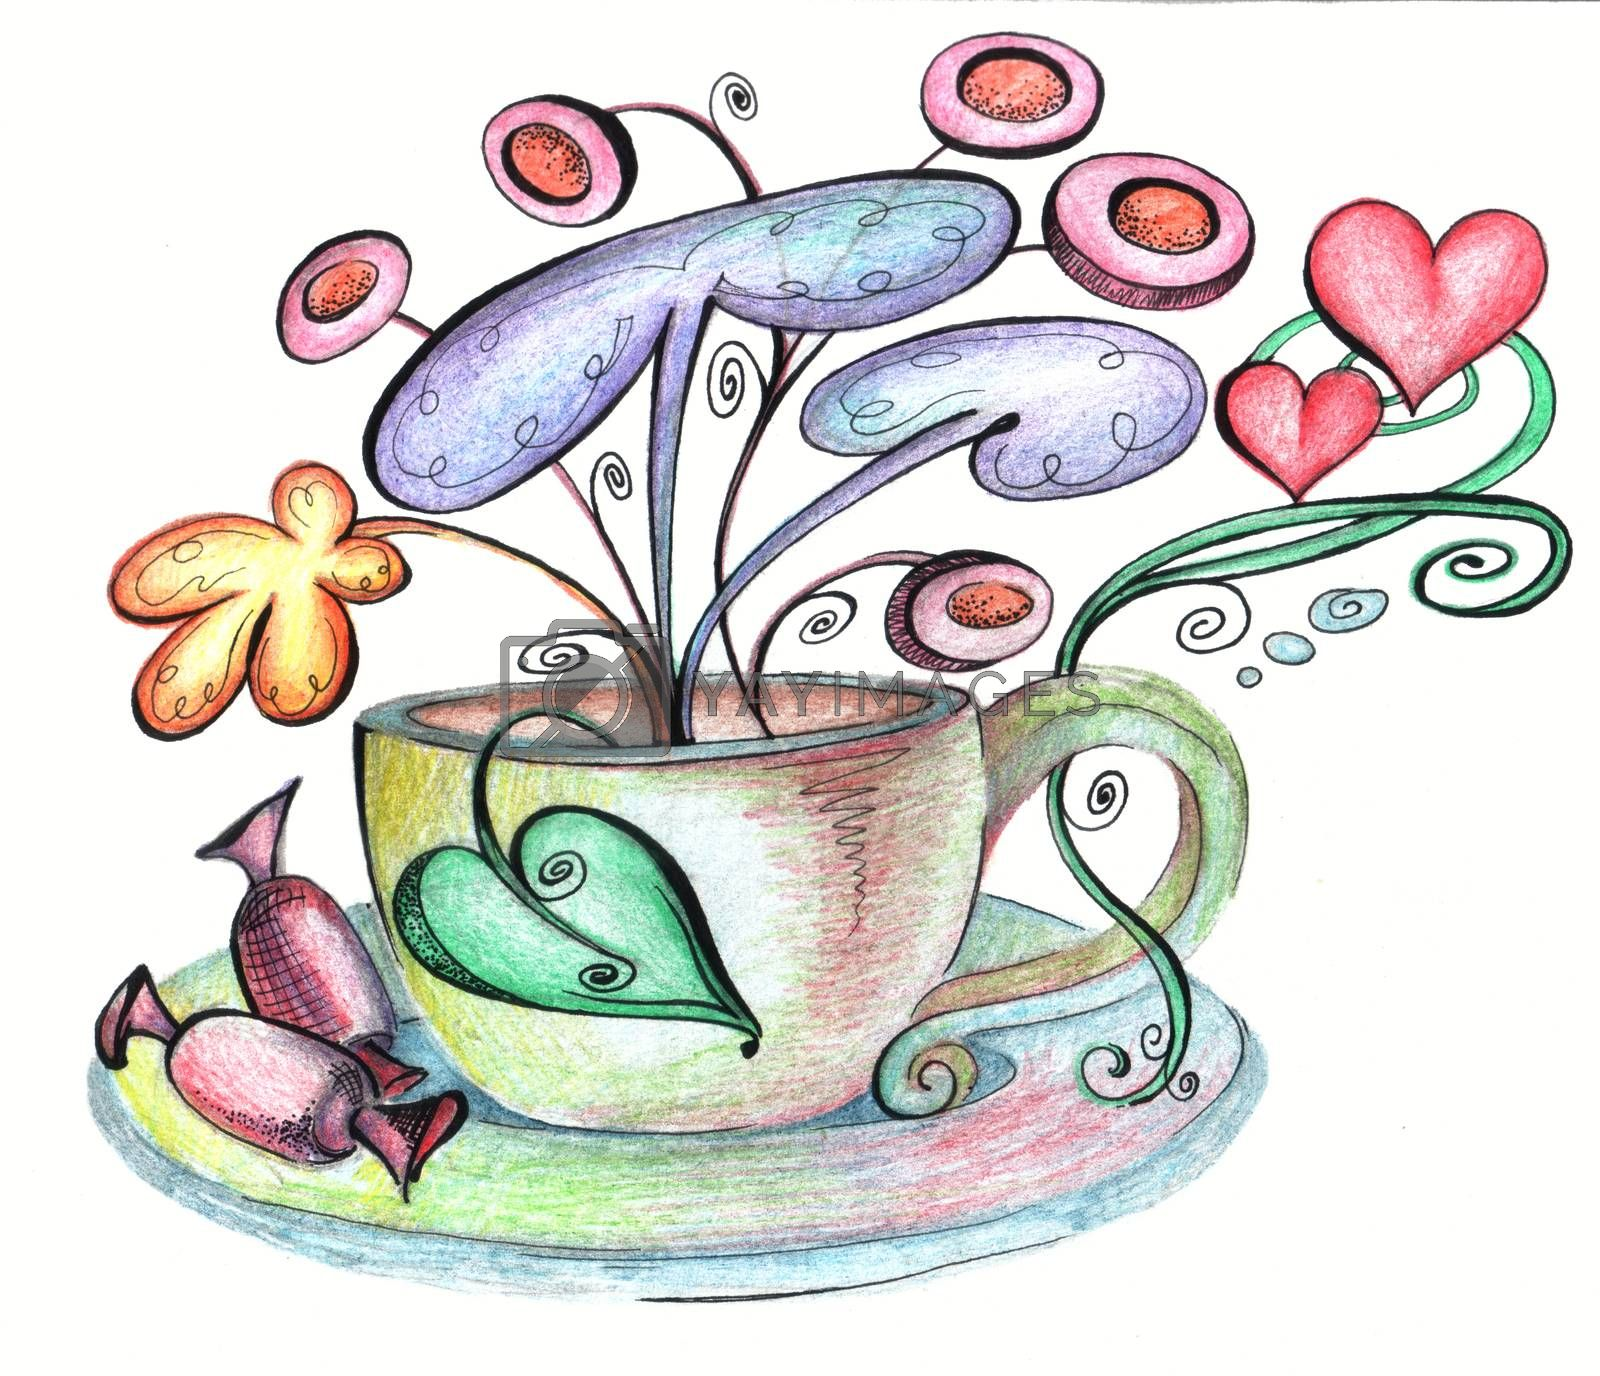 Stylized cup and saucer and chocolates from which strange flowers grow